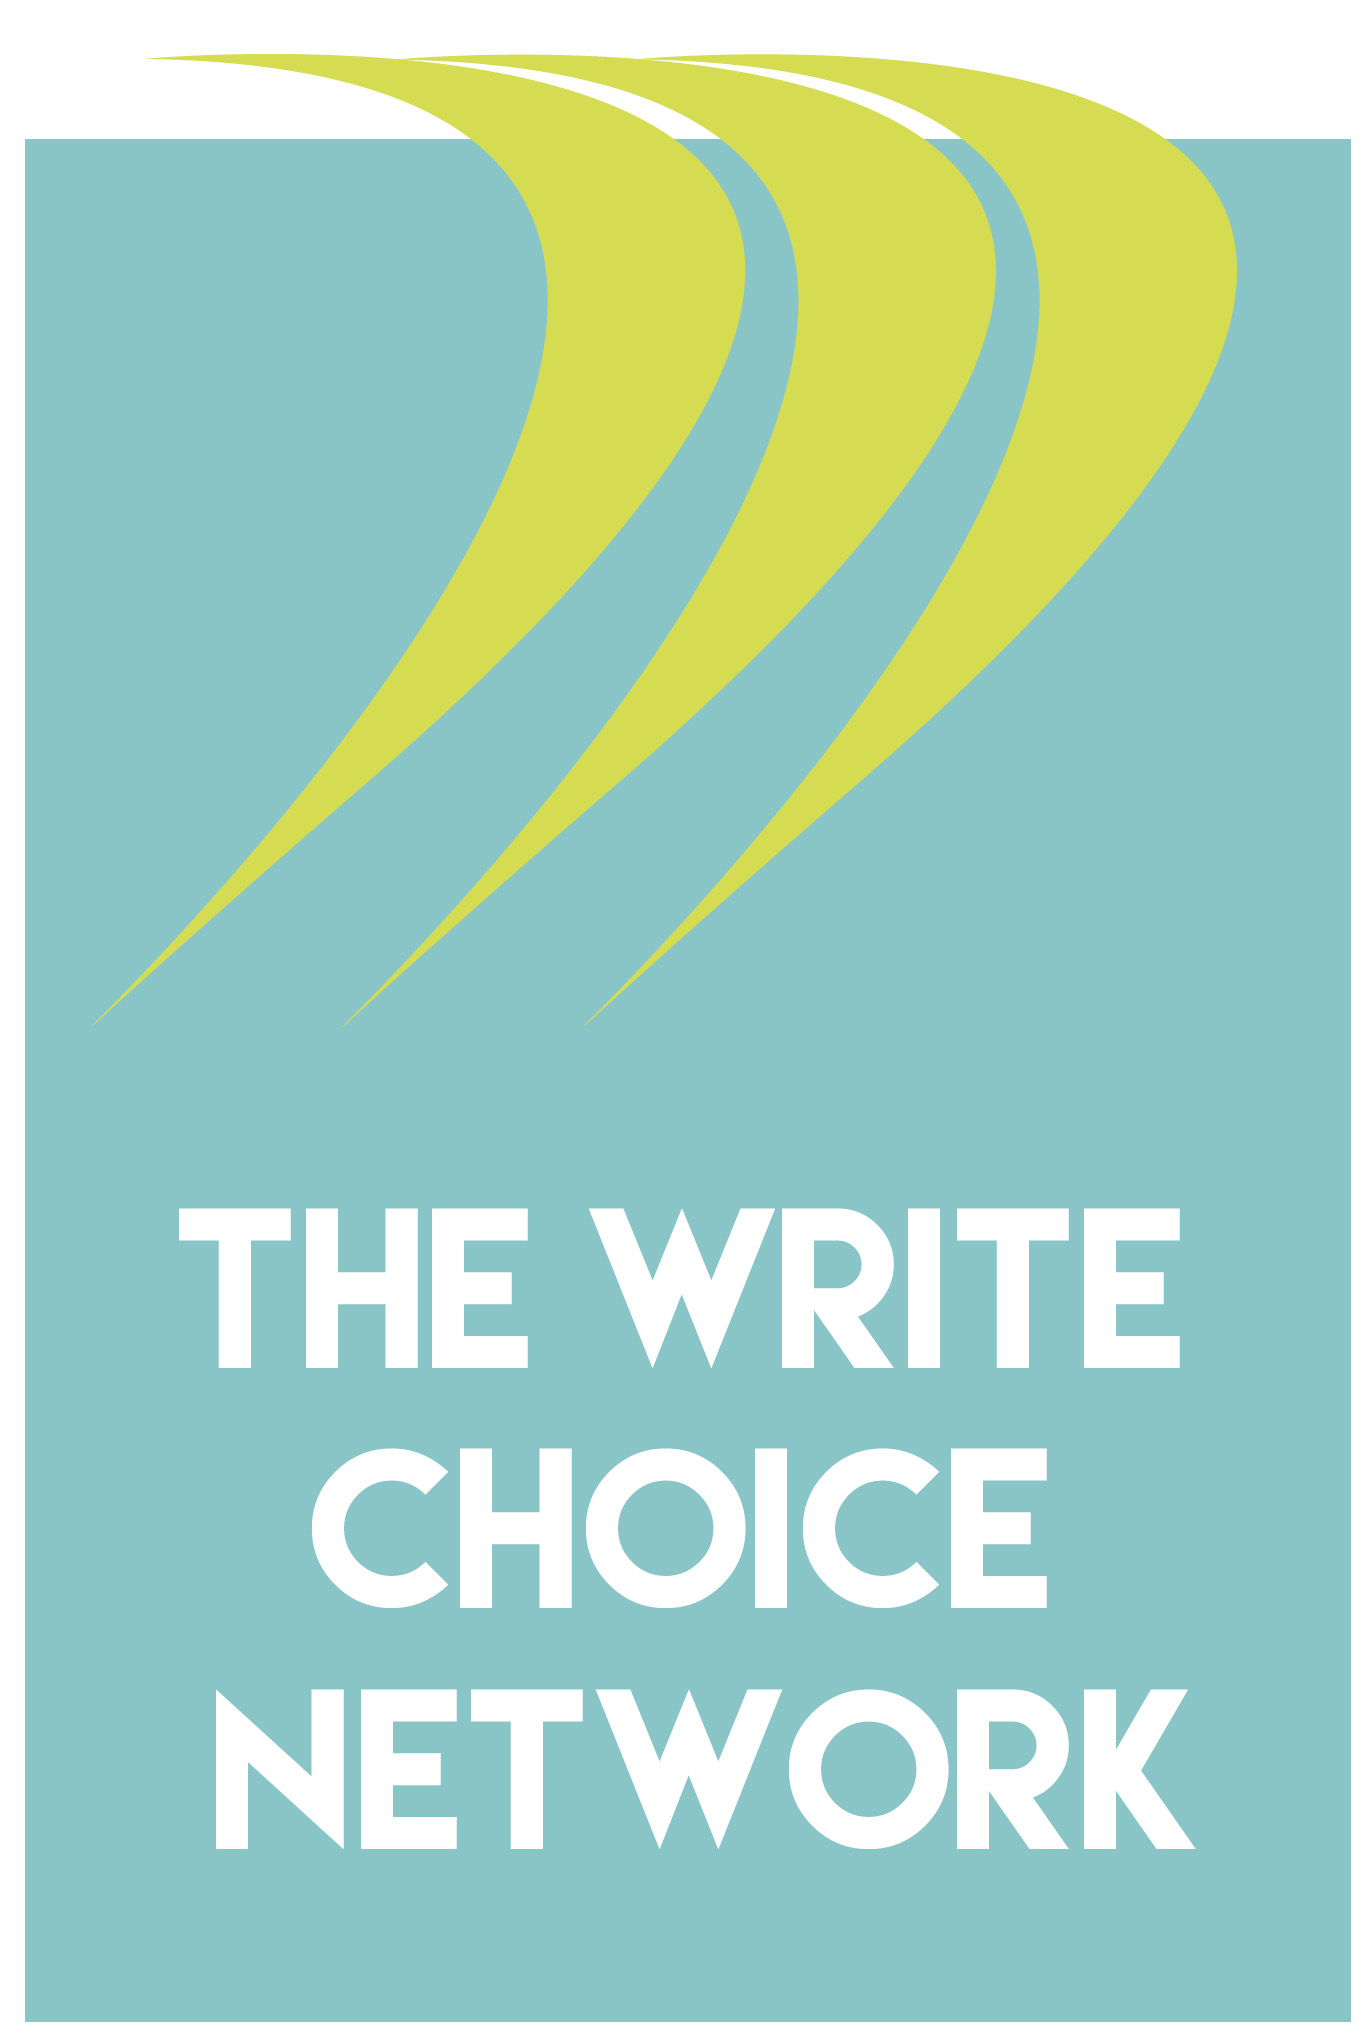 thewritechoicenetwork